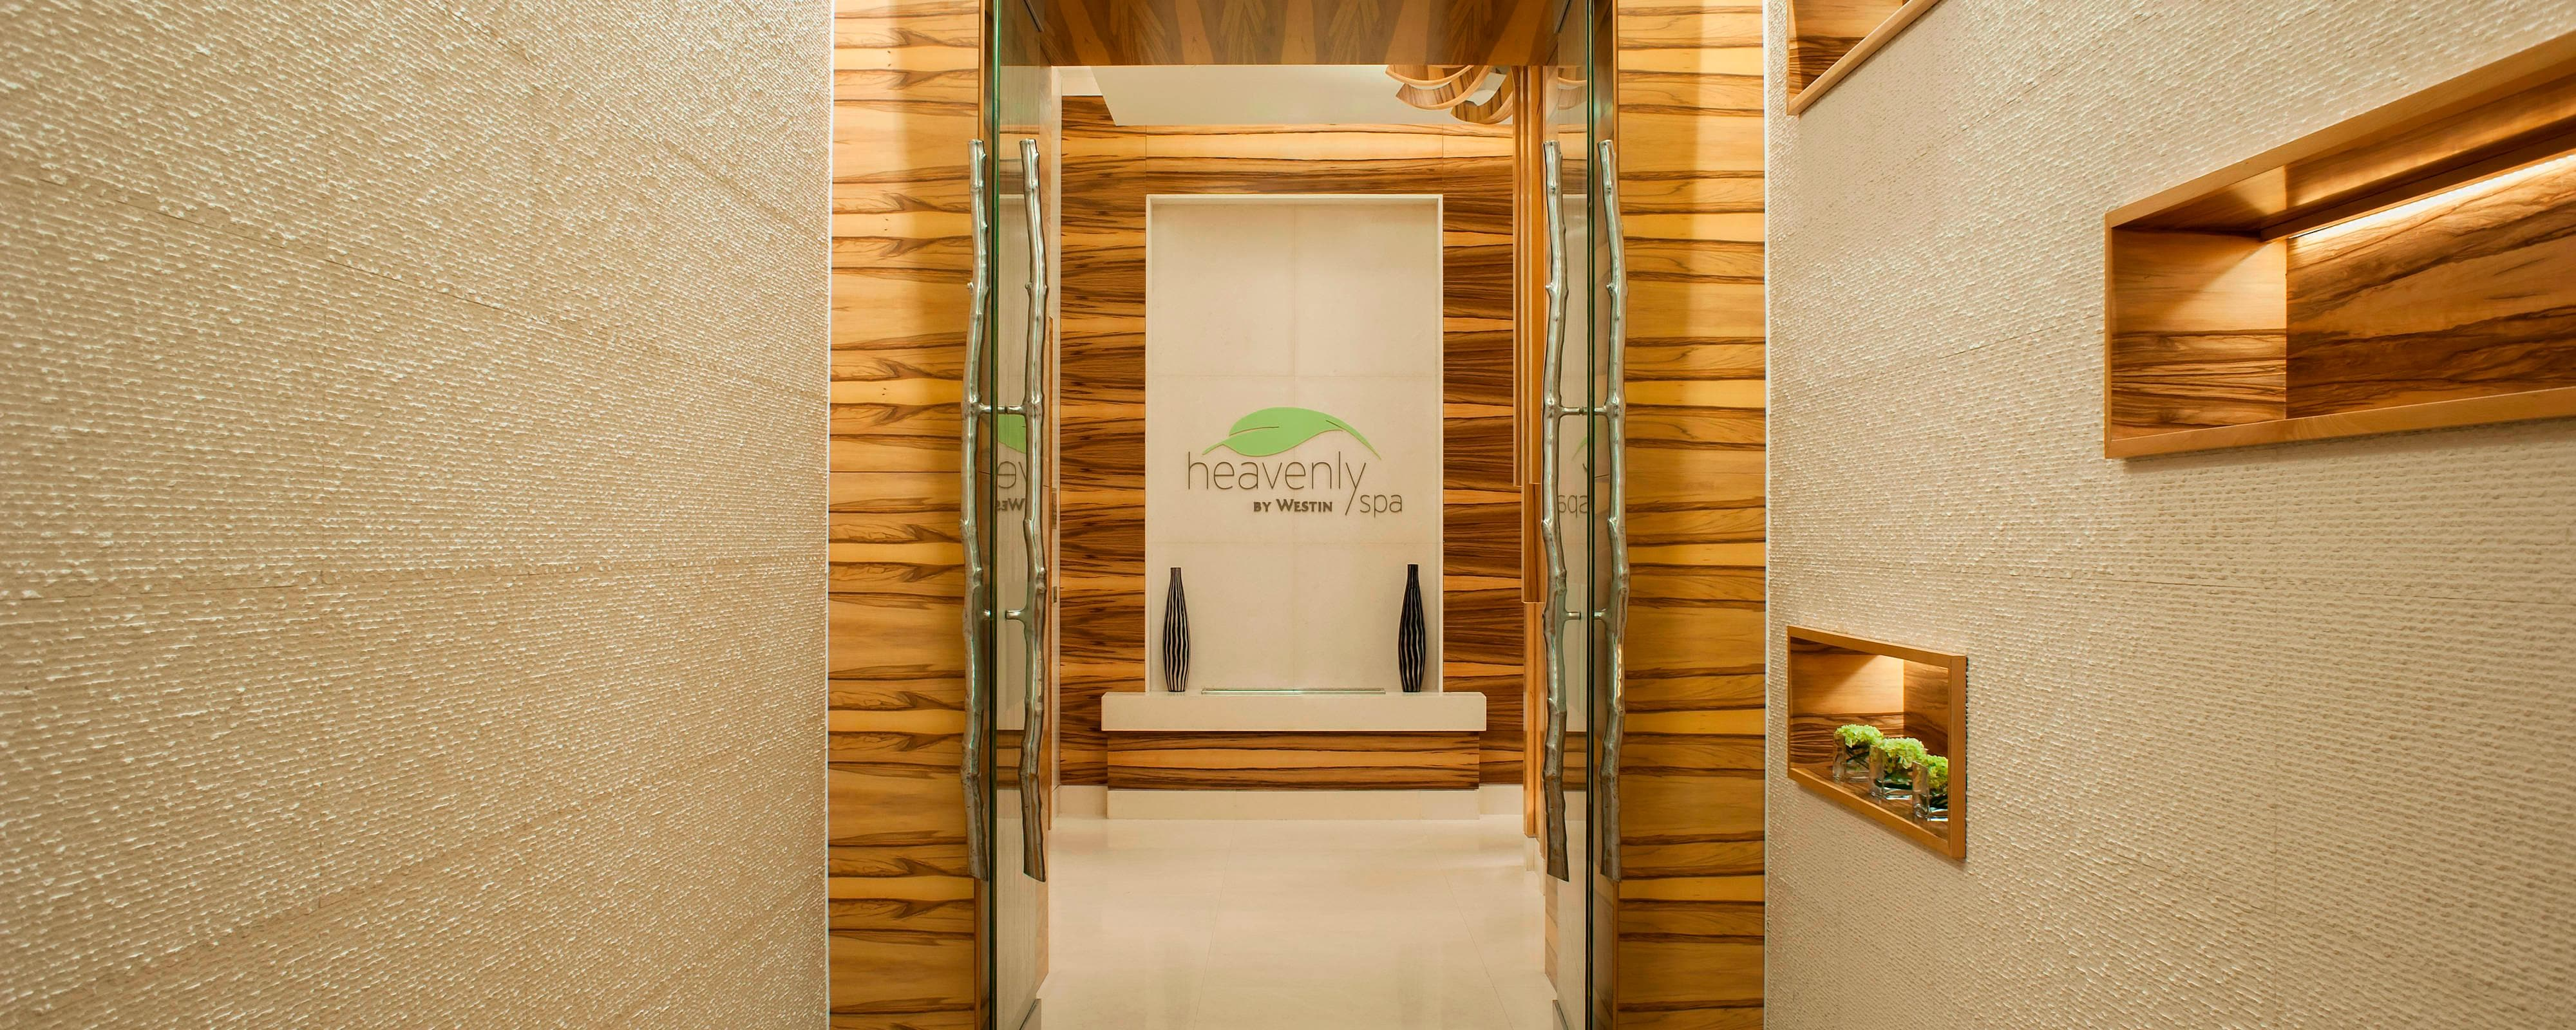 Heavenly Spa - Entrance